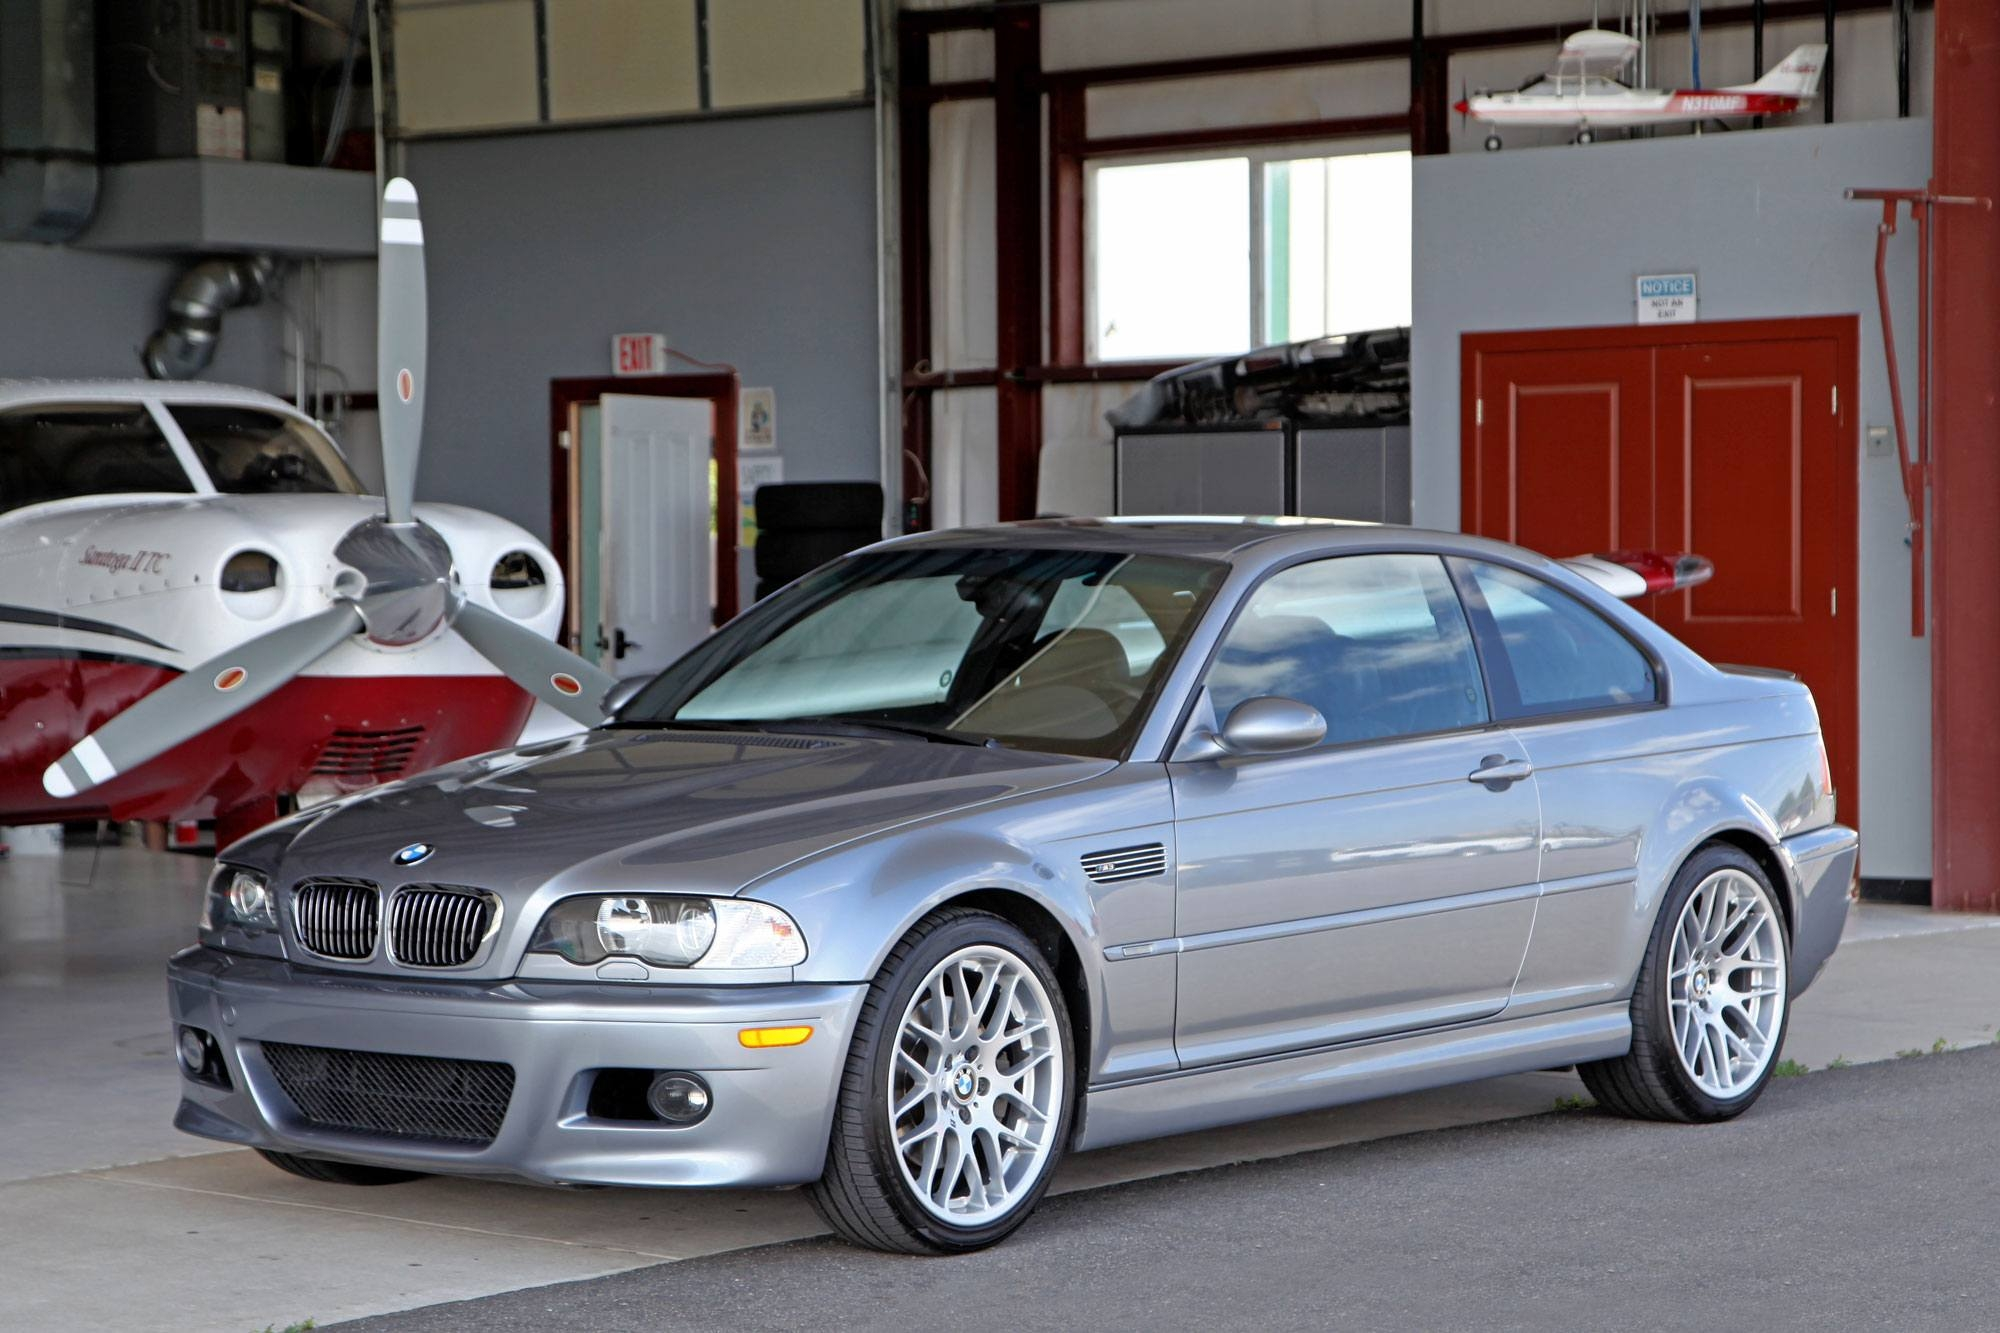 2003 bmw e46 m3 coupe glen shelly auto brokers. Black Bedroom Furniture Sets. Home Design Ideas